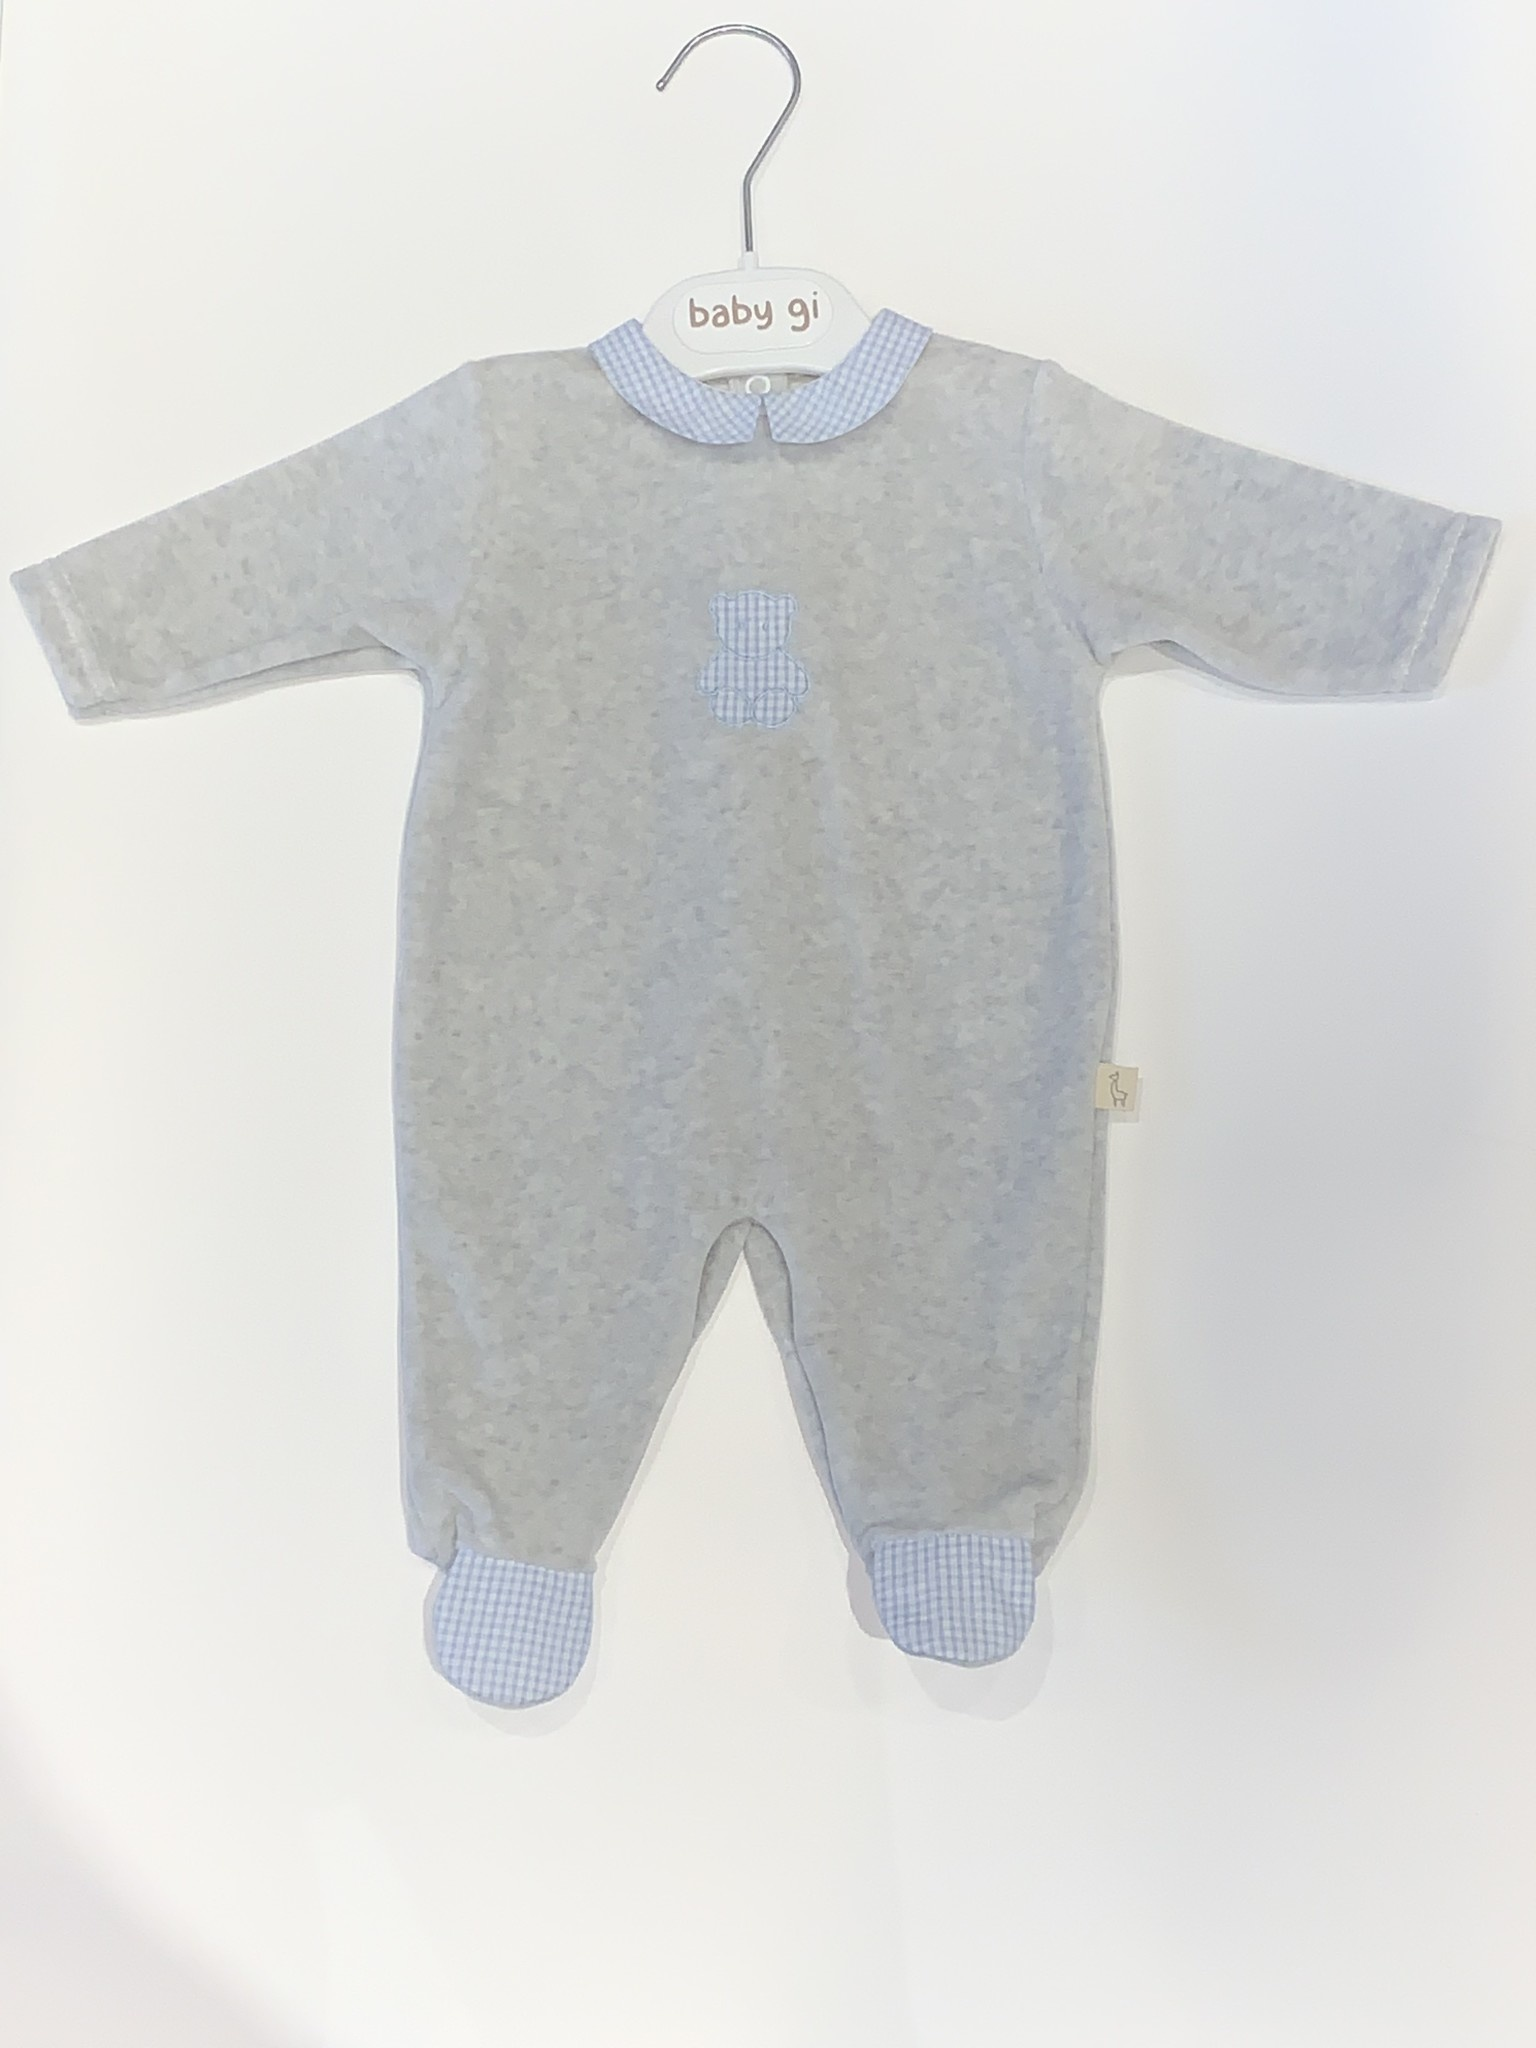 Baby Gi Baby Gi grey and blue teddy baby grow with gingham detail